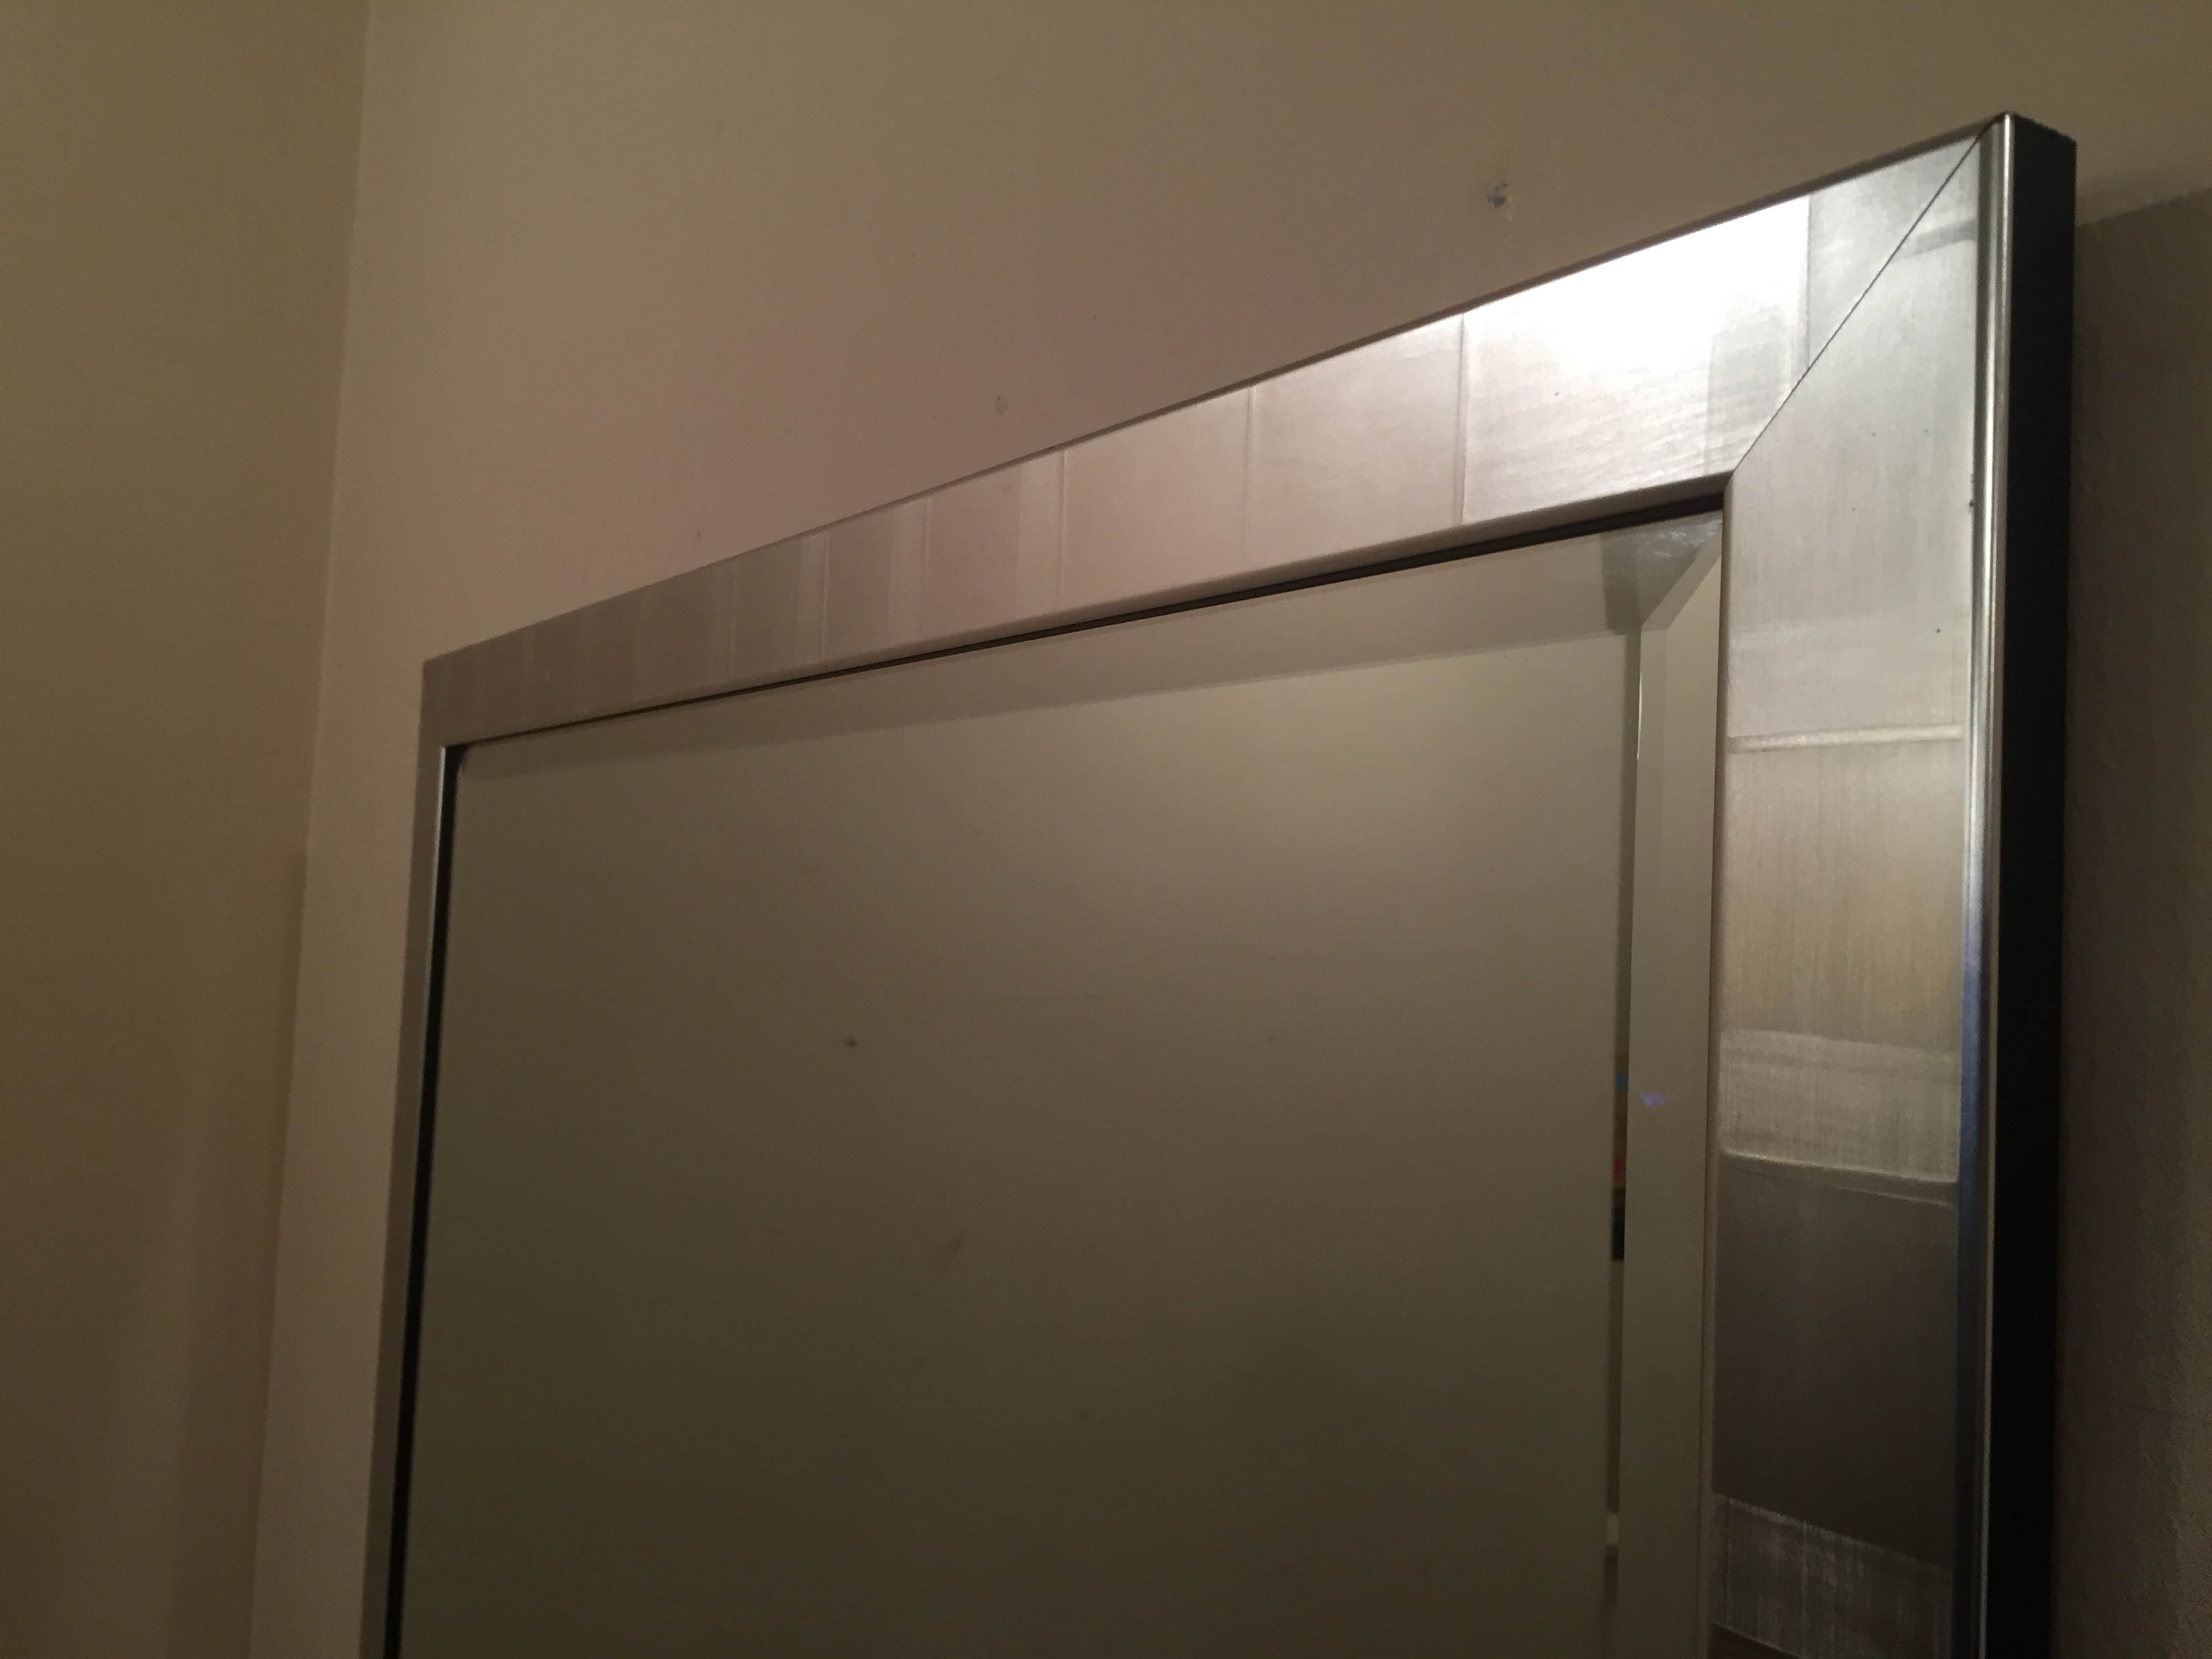 1 x wall mirror with beveled edge dimensions 60 x 82 for Mirror 45 x 60